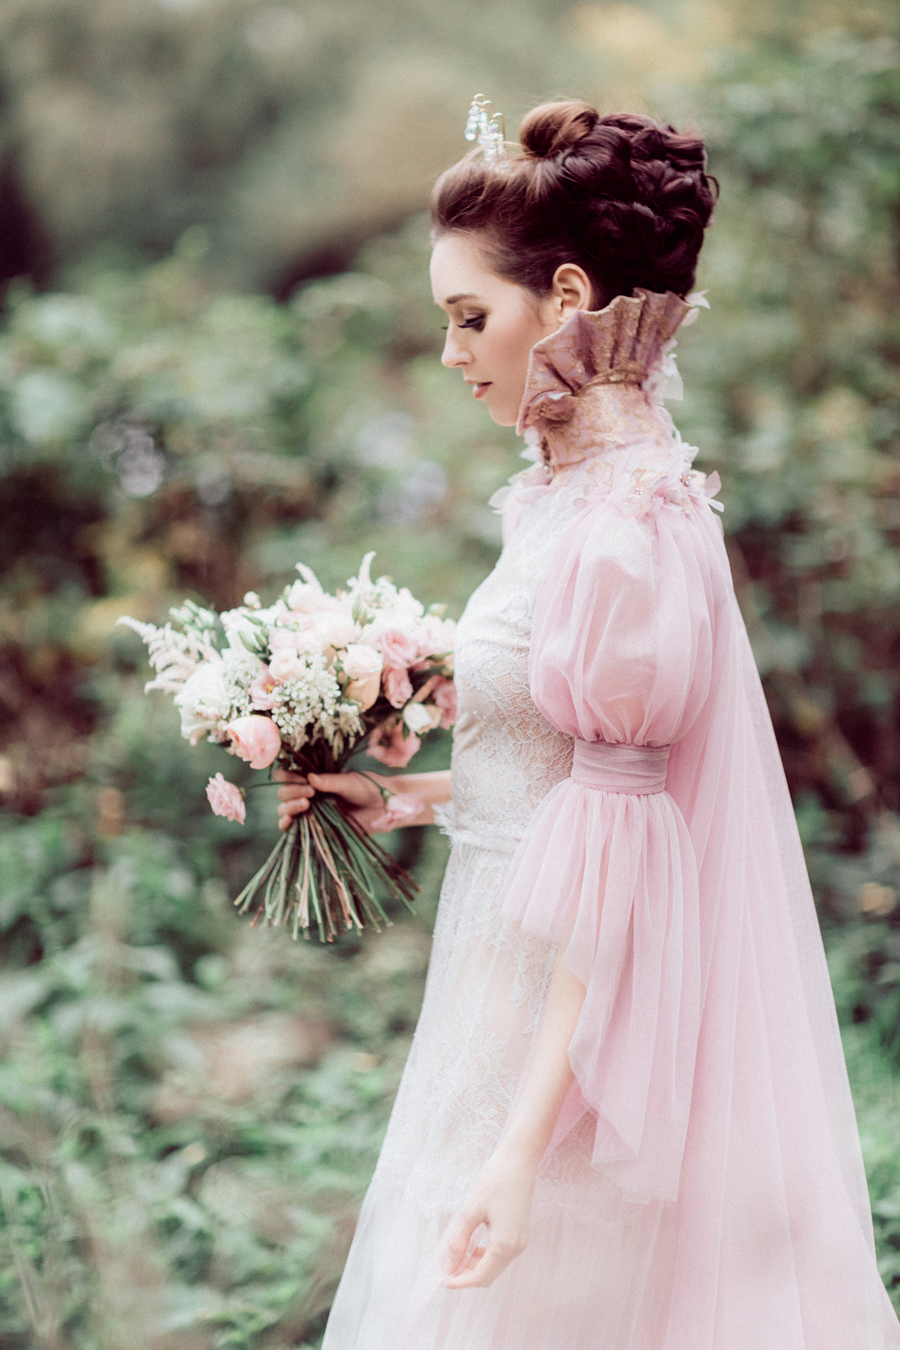 My Fair Lady! A Sophisticated Pale Pinks, Apricots & Lilac Inspired Bridal Shoot...